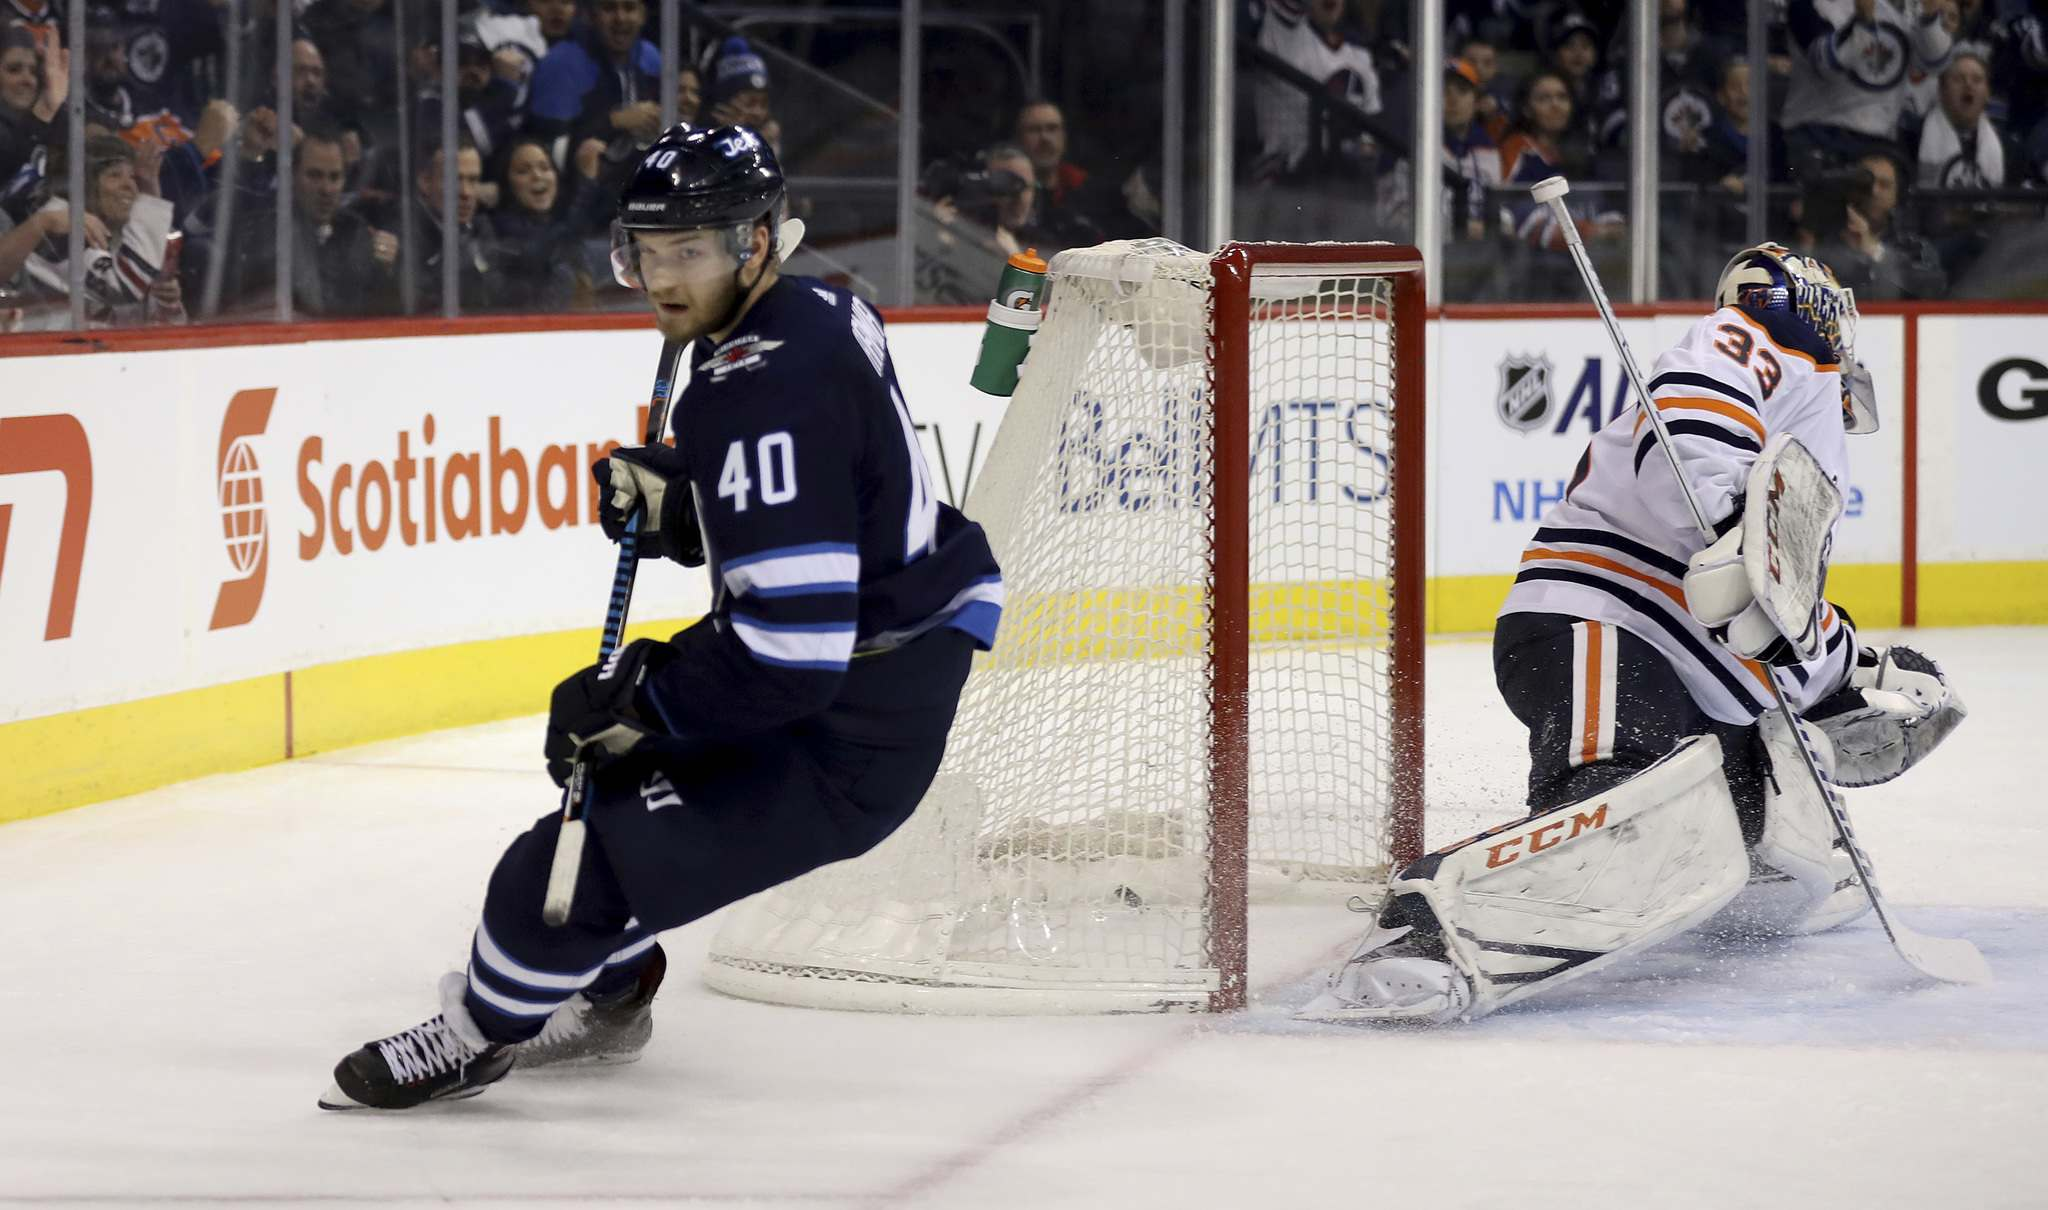 Jets Expected To Be Part Of Nhl S Showcase Games In Finland Next